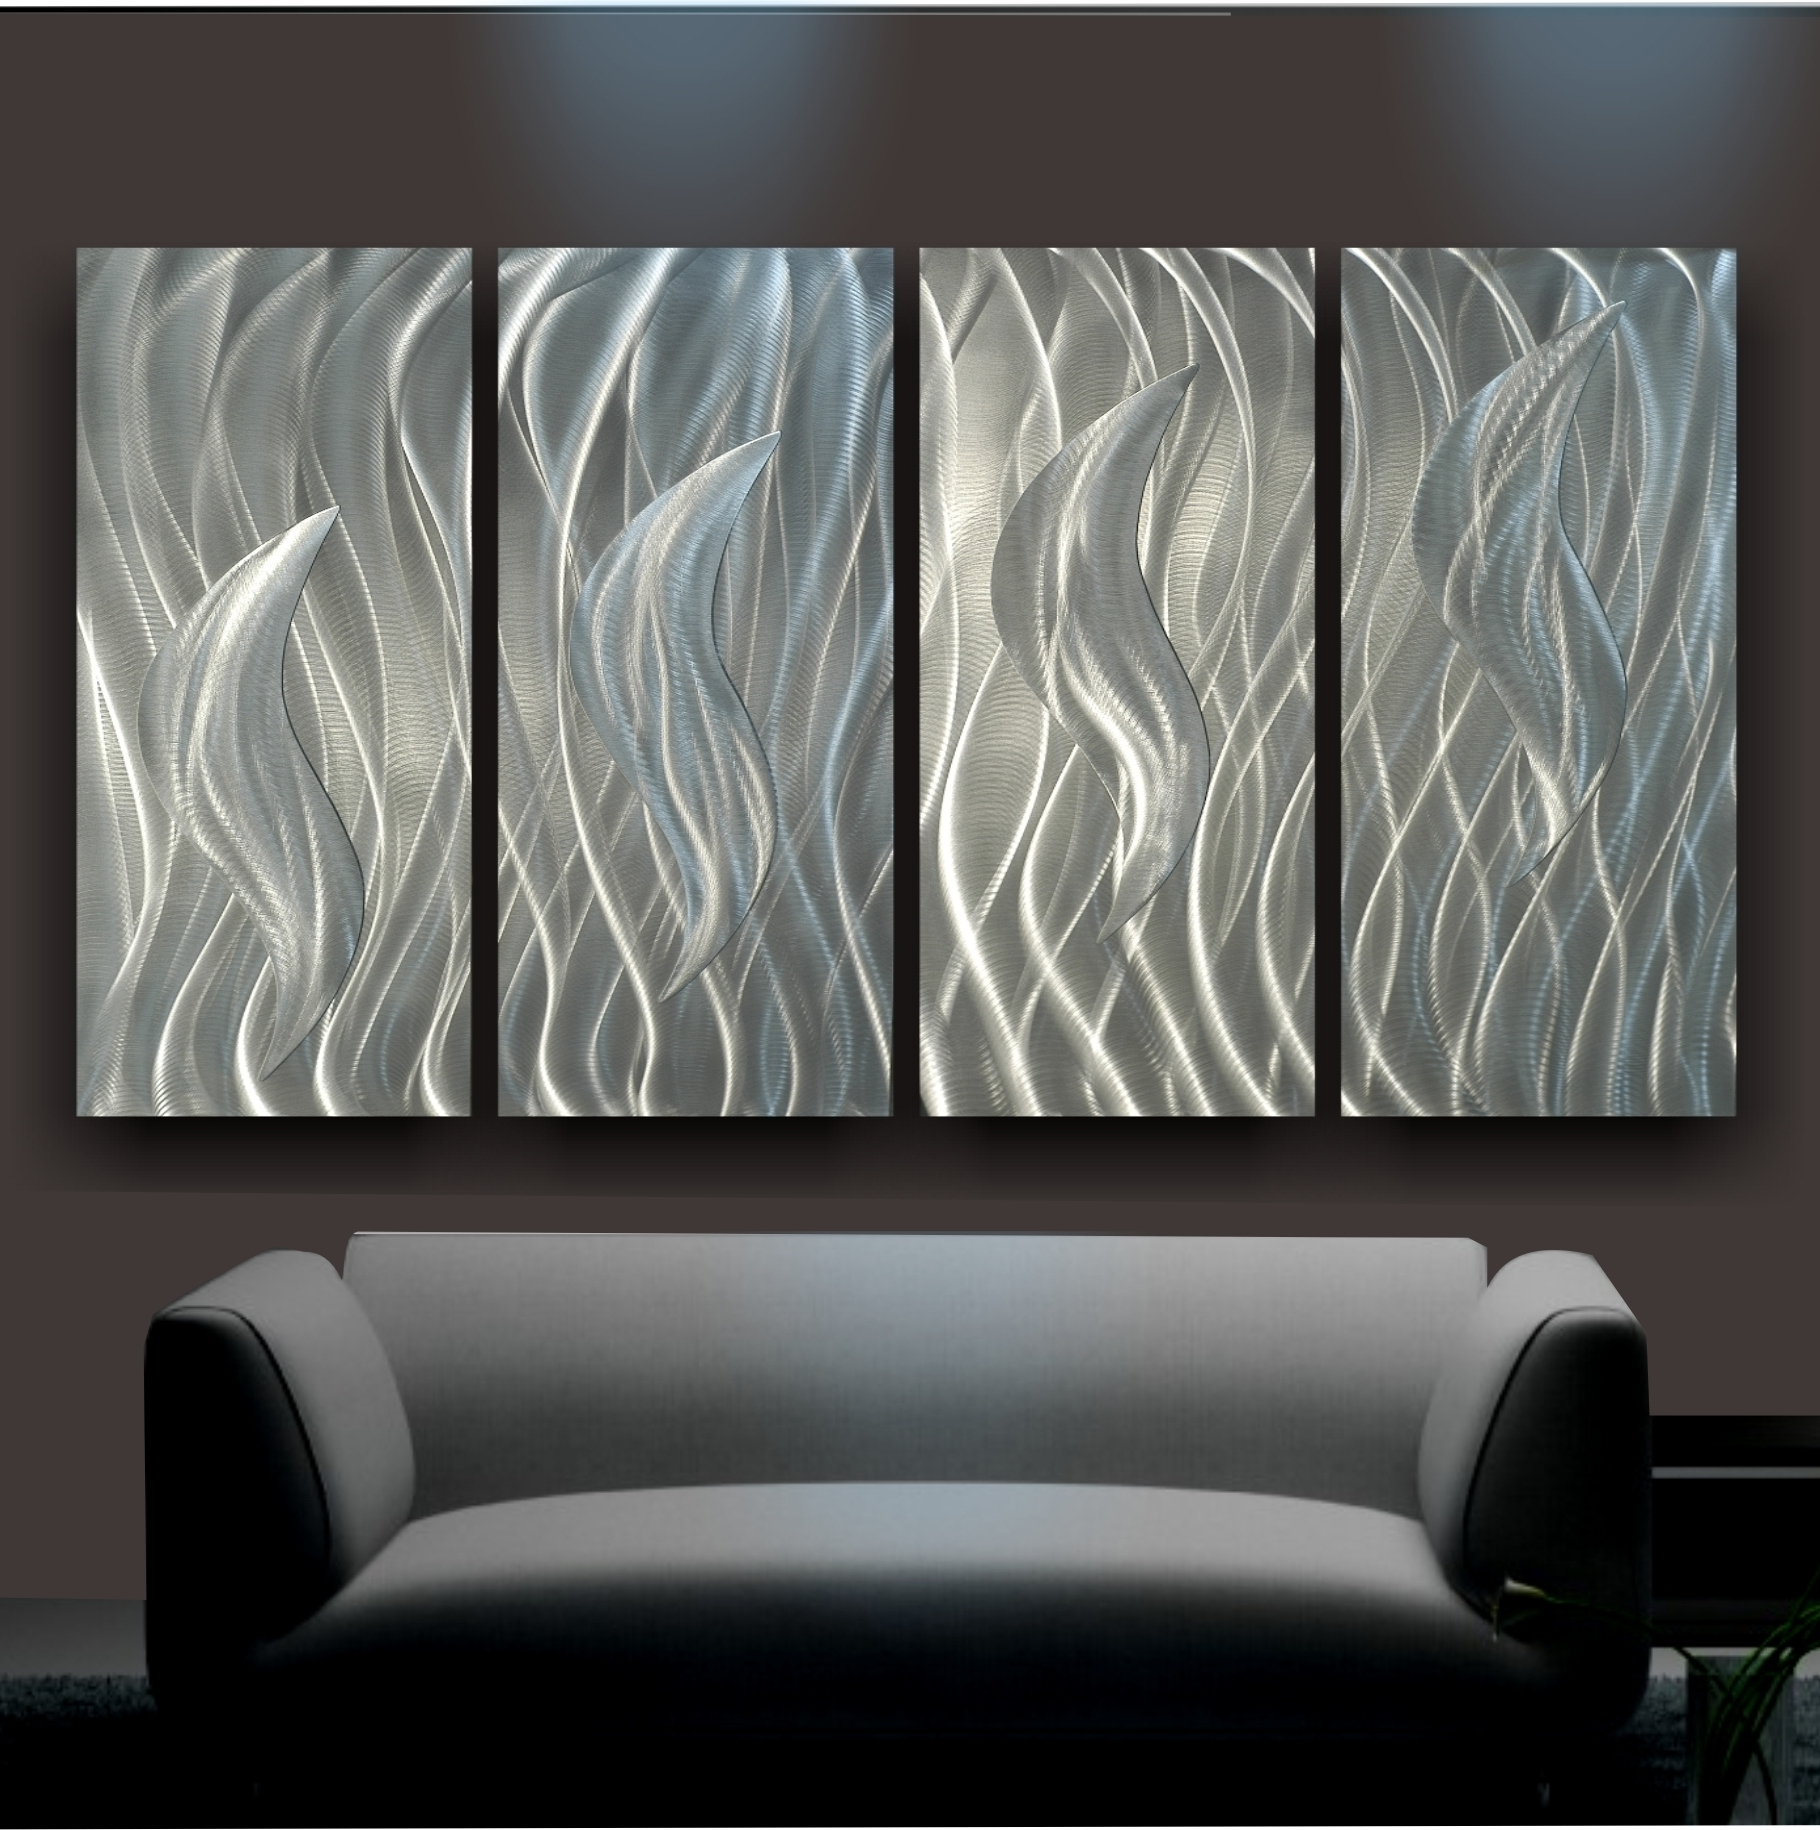 Steel Wall Surface Fine Art Is A Contemporary Sort Of Art Work Intended For Widely Used Cheap Metal Wall Art (View 8 of 15)